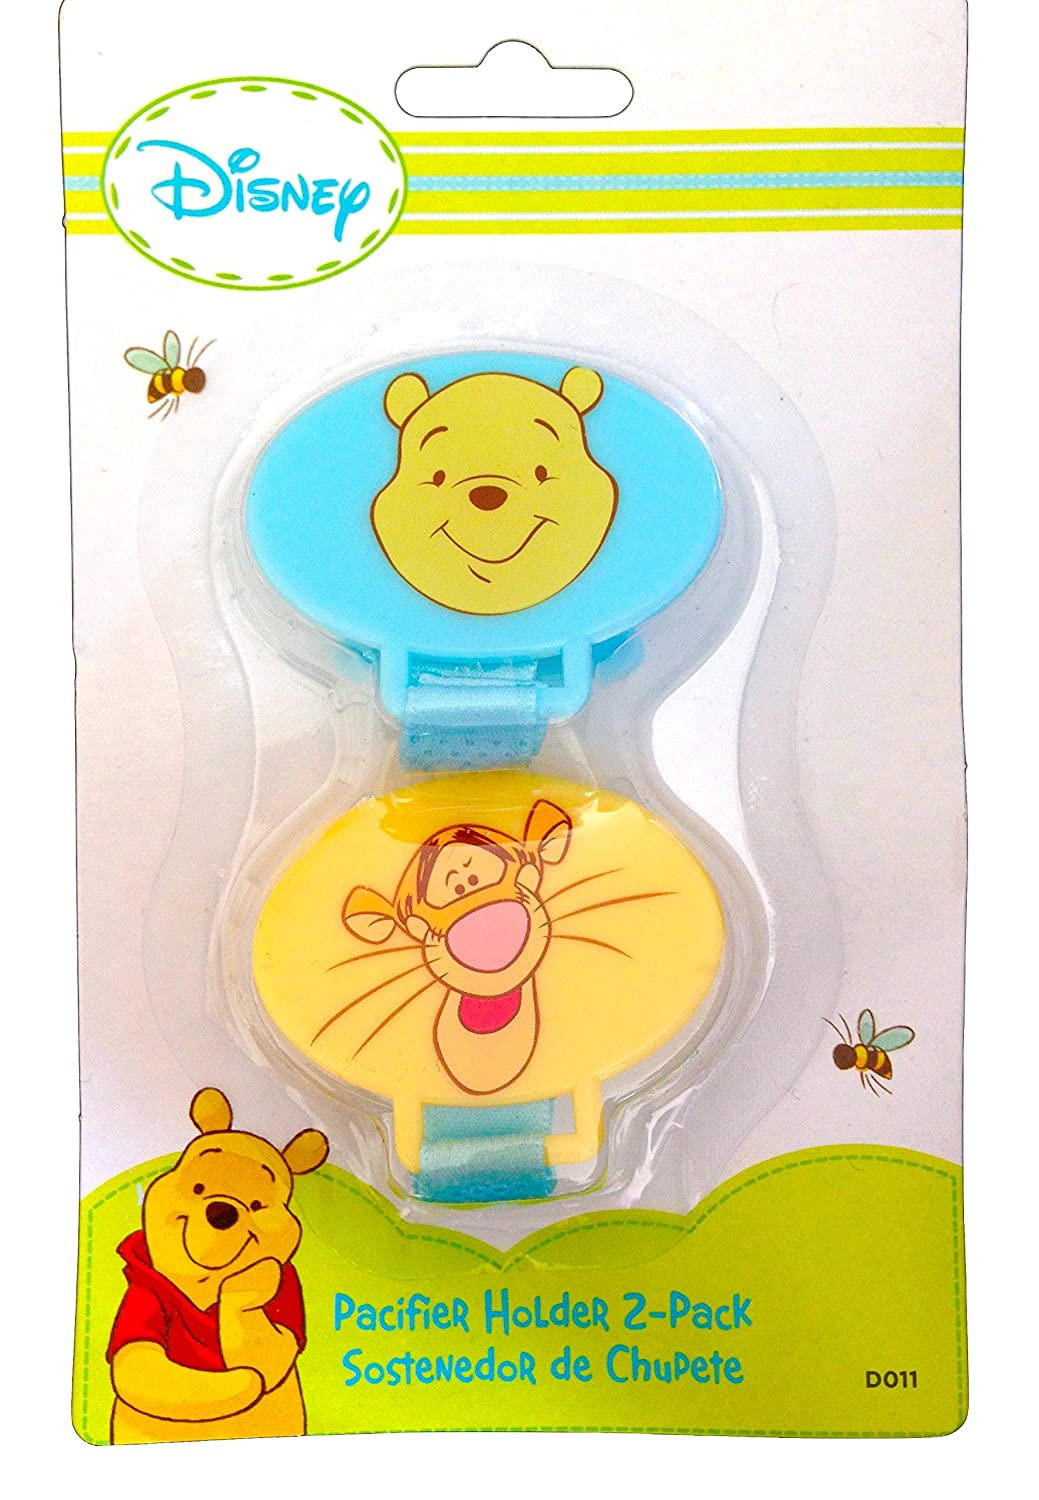 Amazon.com: Winnie the Pooh Disney Baby Salud y personal Kit ...